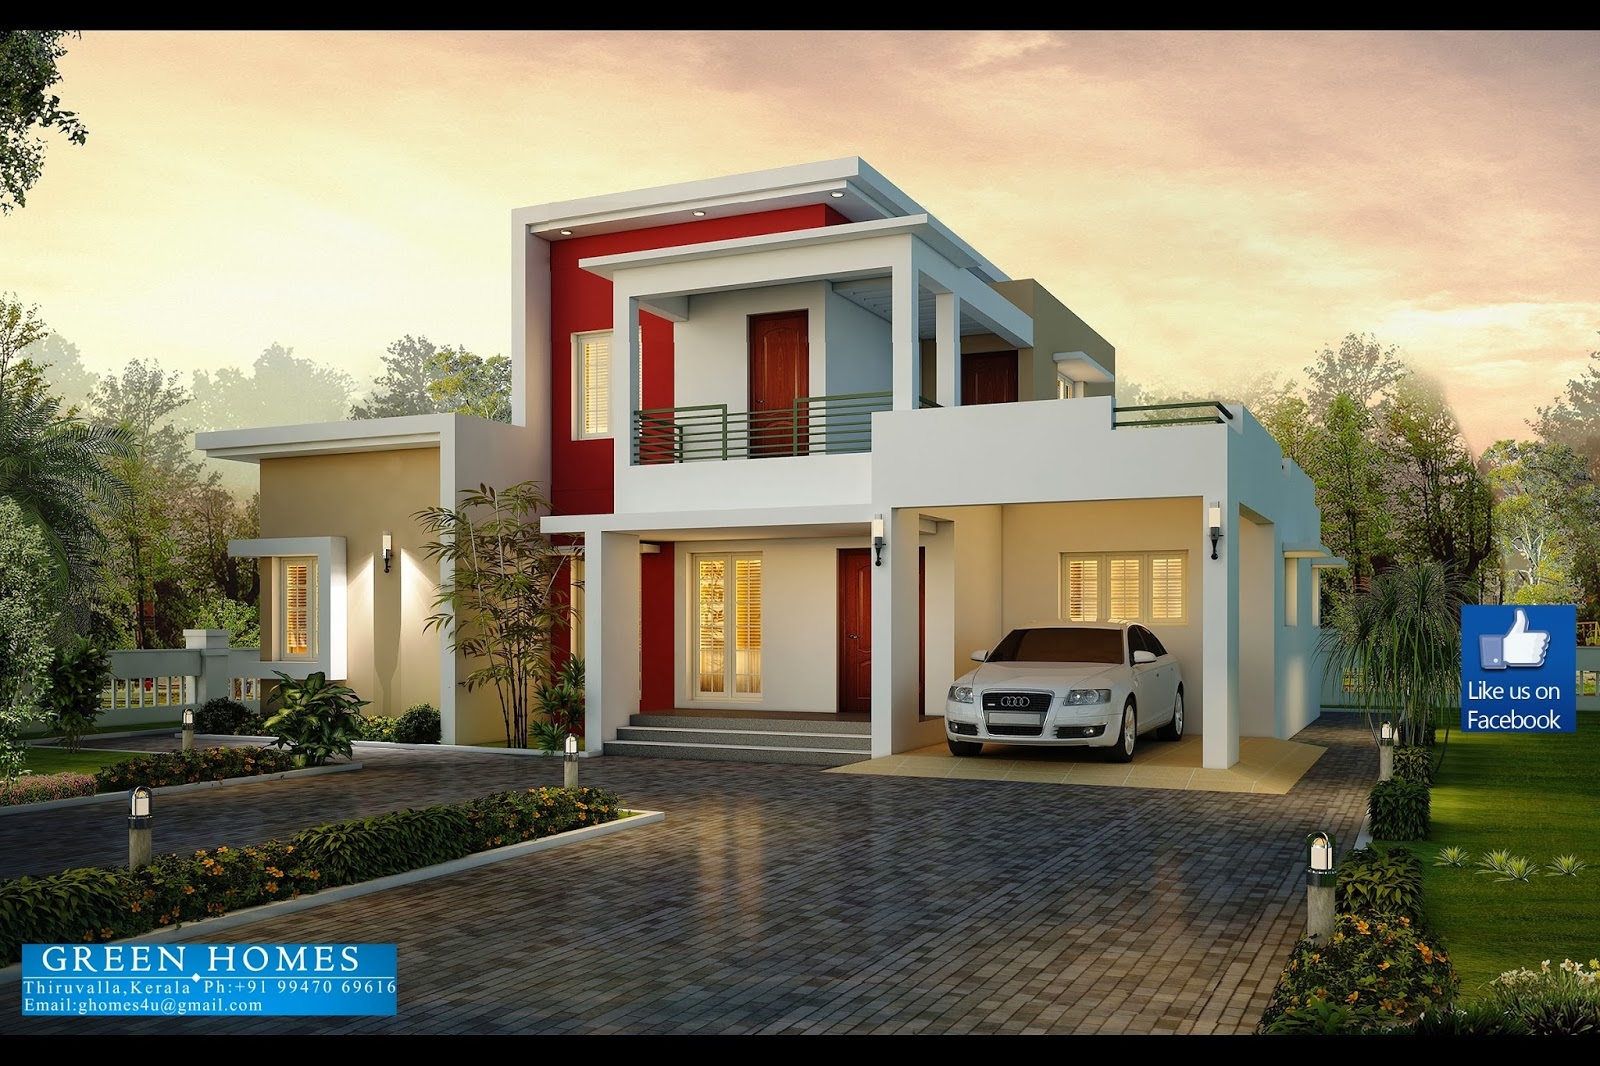 Green homes awesome 3 bedroom modern house design for 3 bedroom home designs